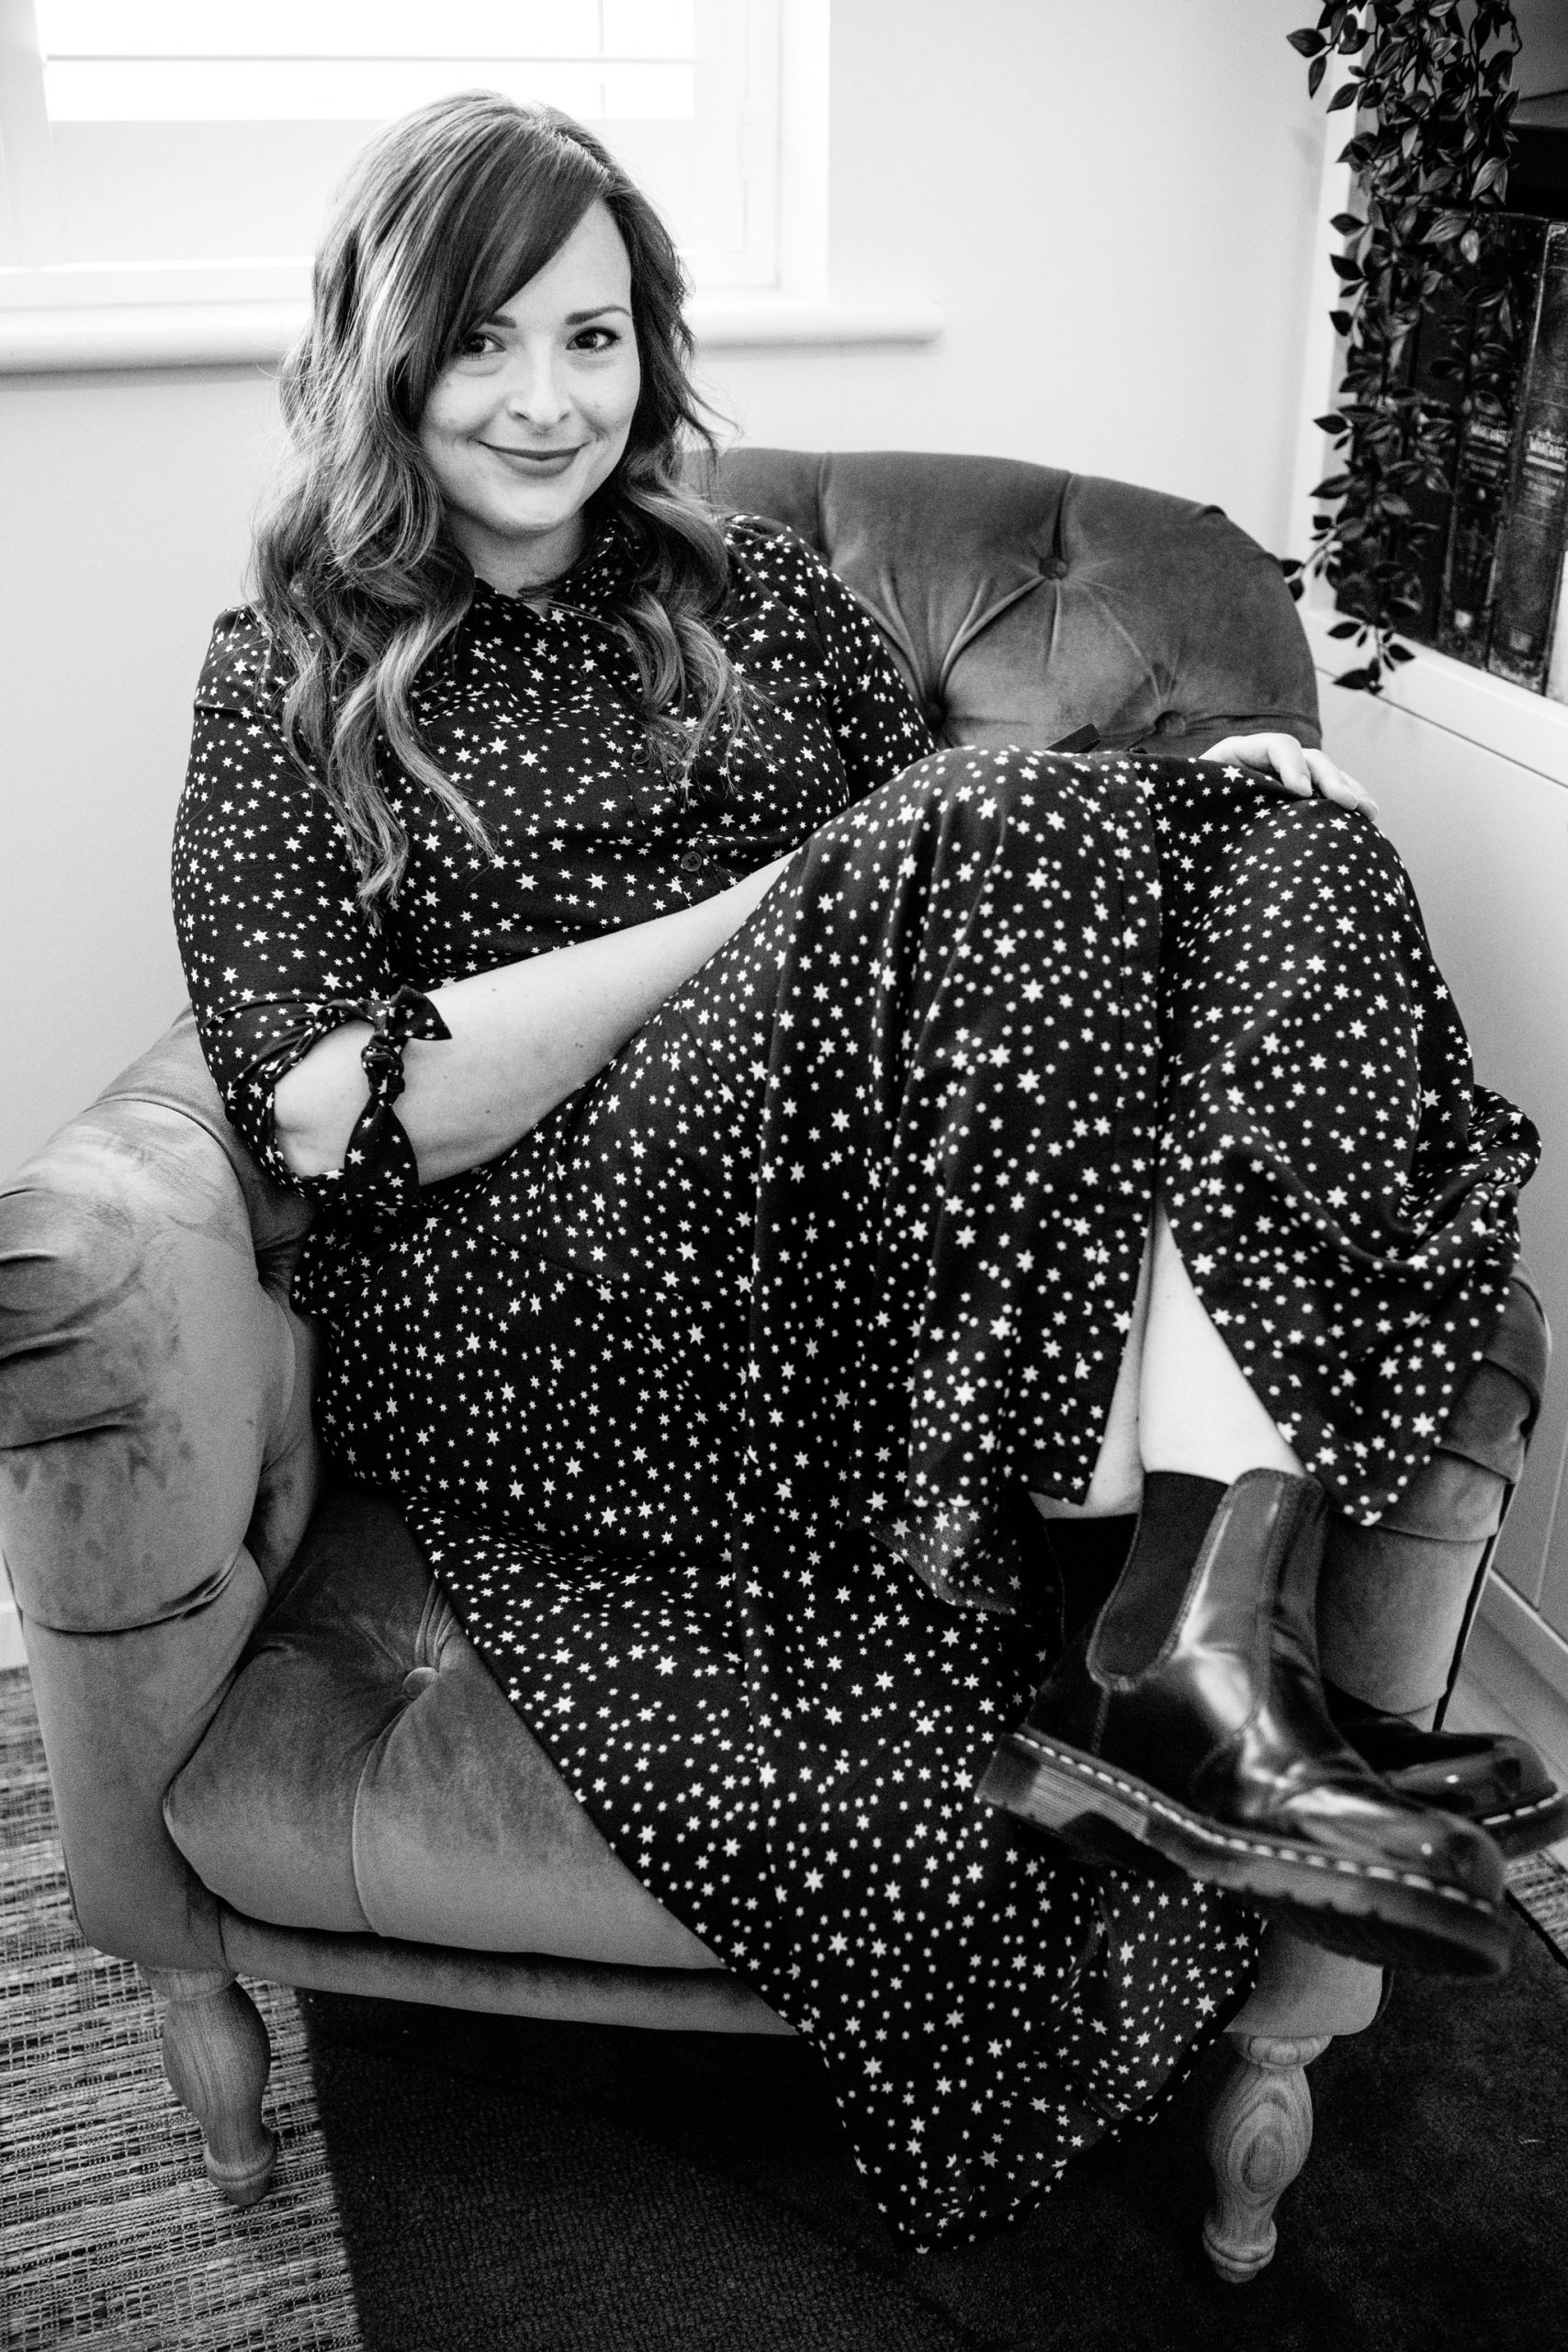 bath wedding photographer laid back in loaf armchair with doc martins on for headshot